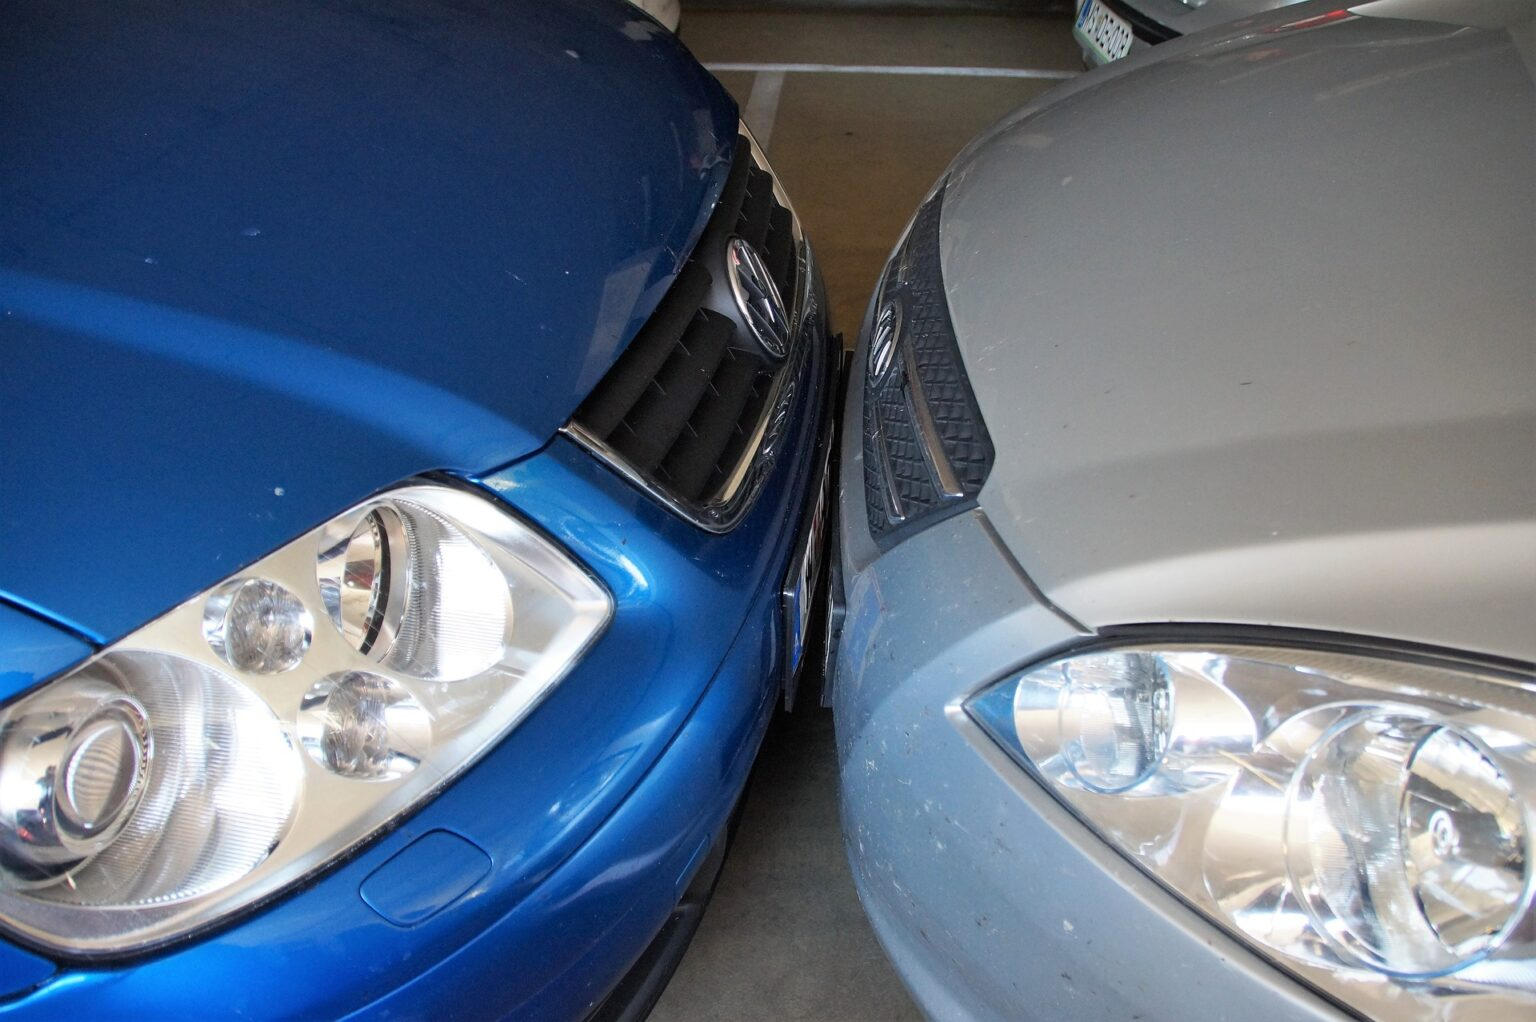 Blue metallic and silver cars, face to face.  Illustrative image aesthetic text of cars.